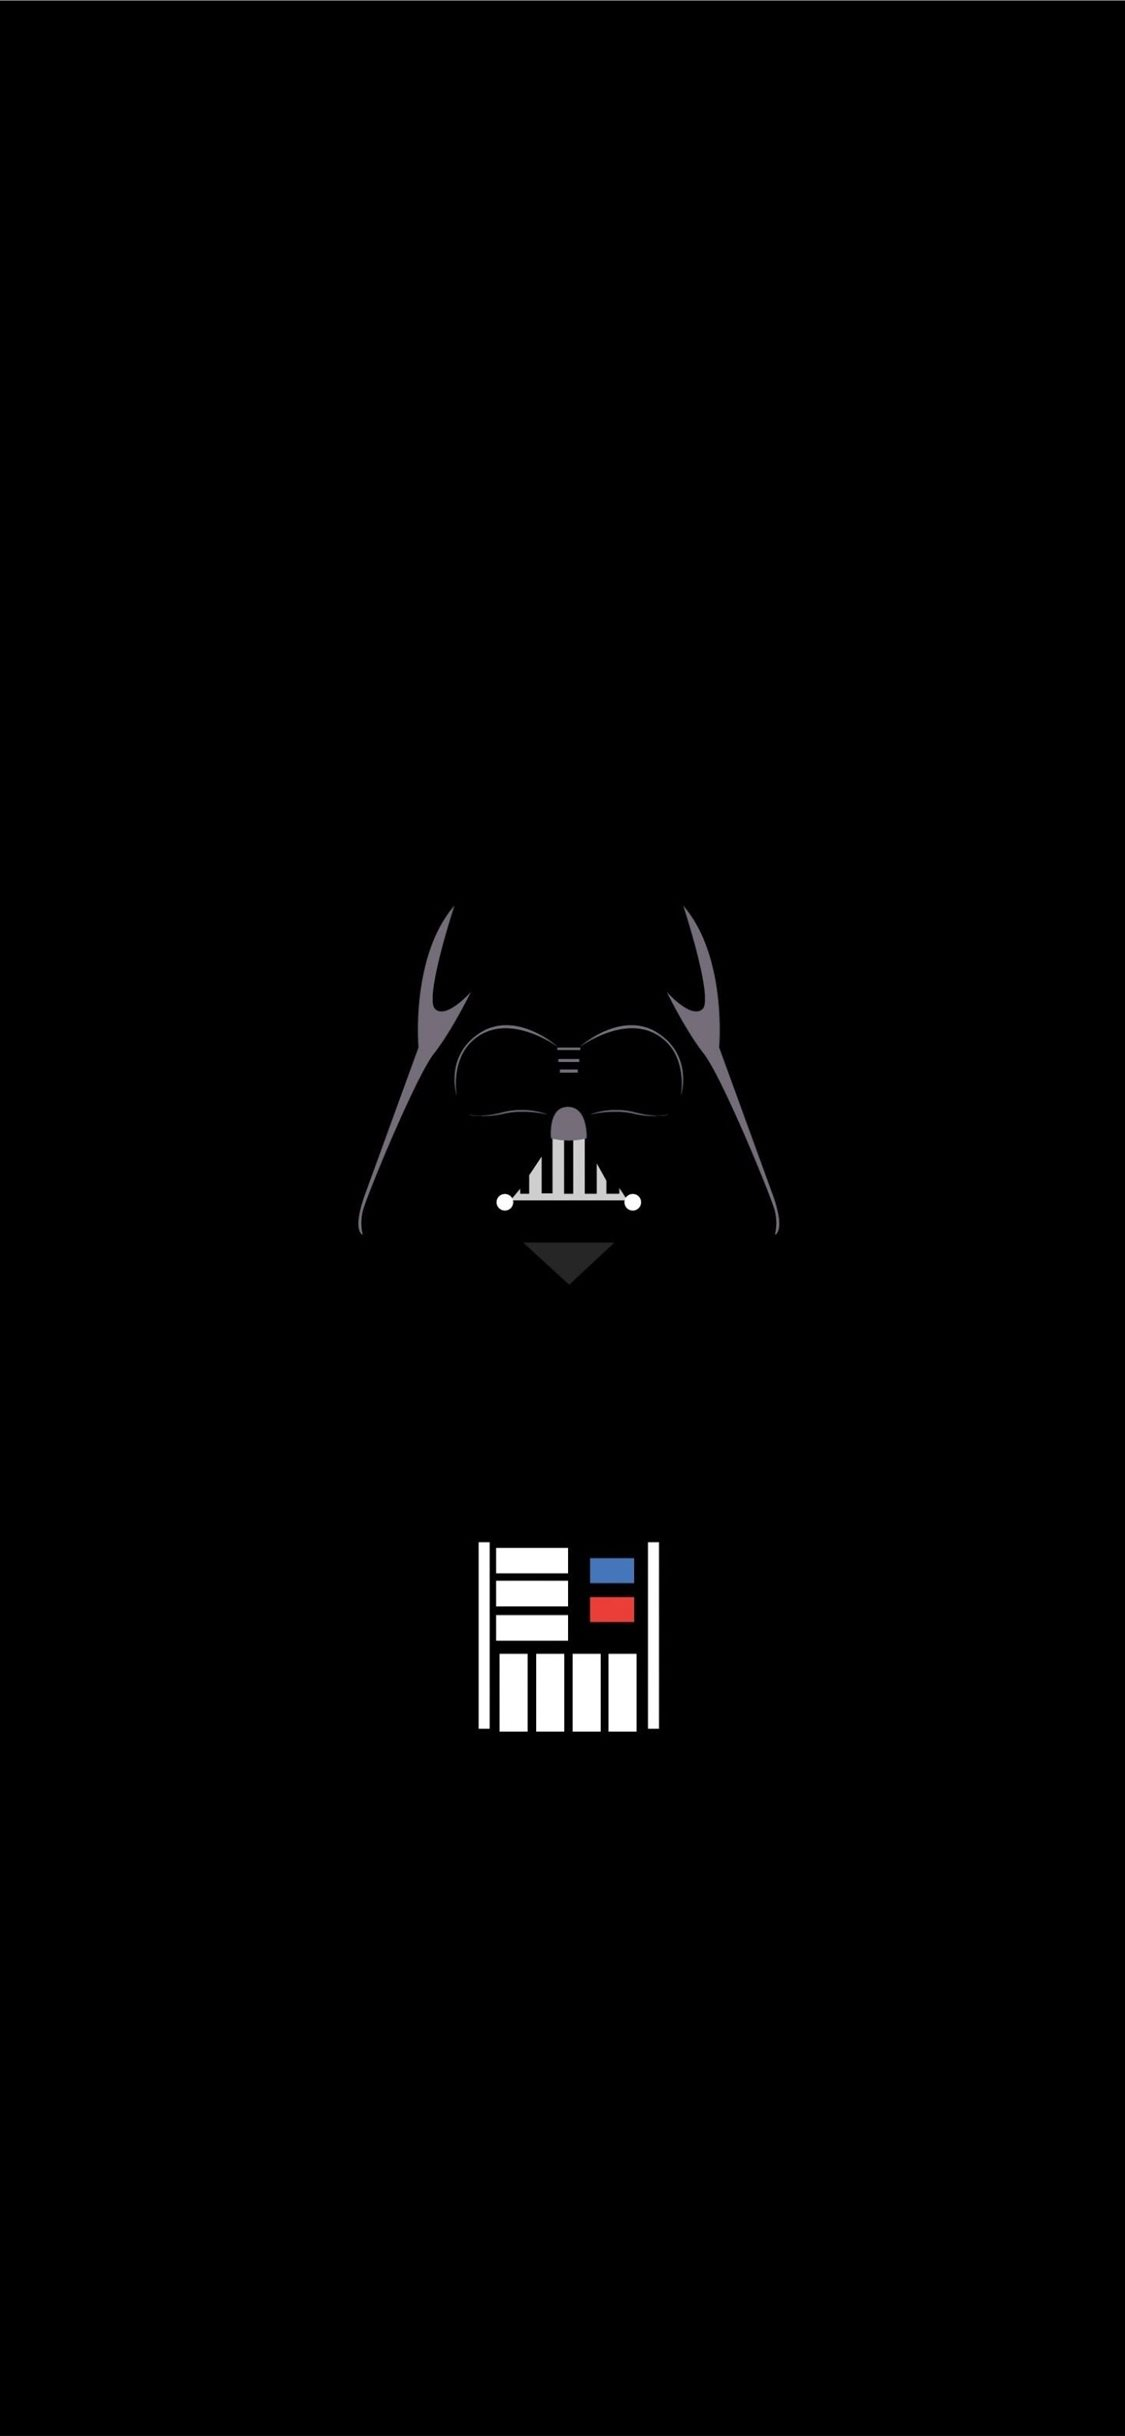 Best Minimalist Star Wars Iphone 11 Wallpapers Hd 2020 Ilikewallpaper